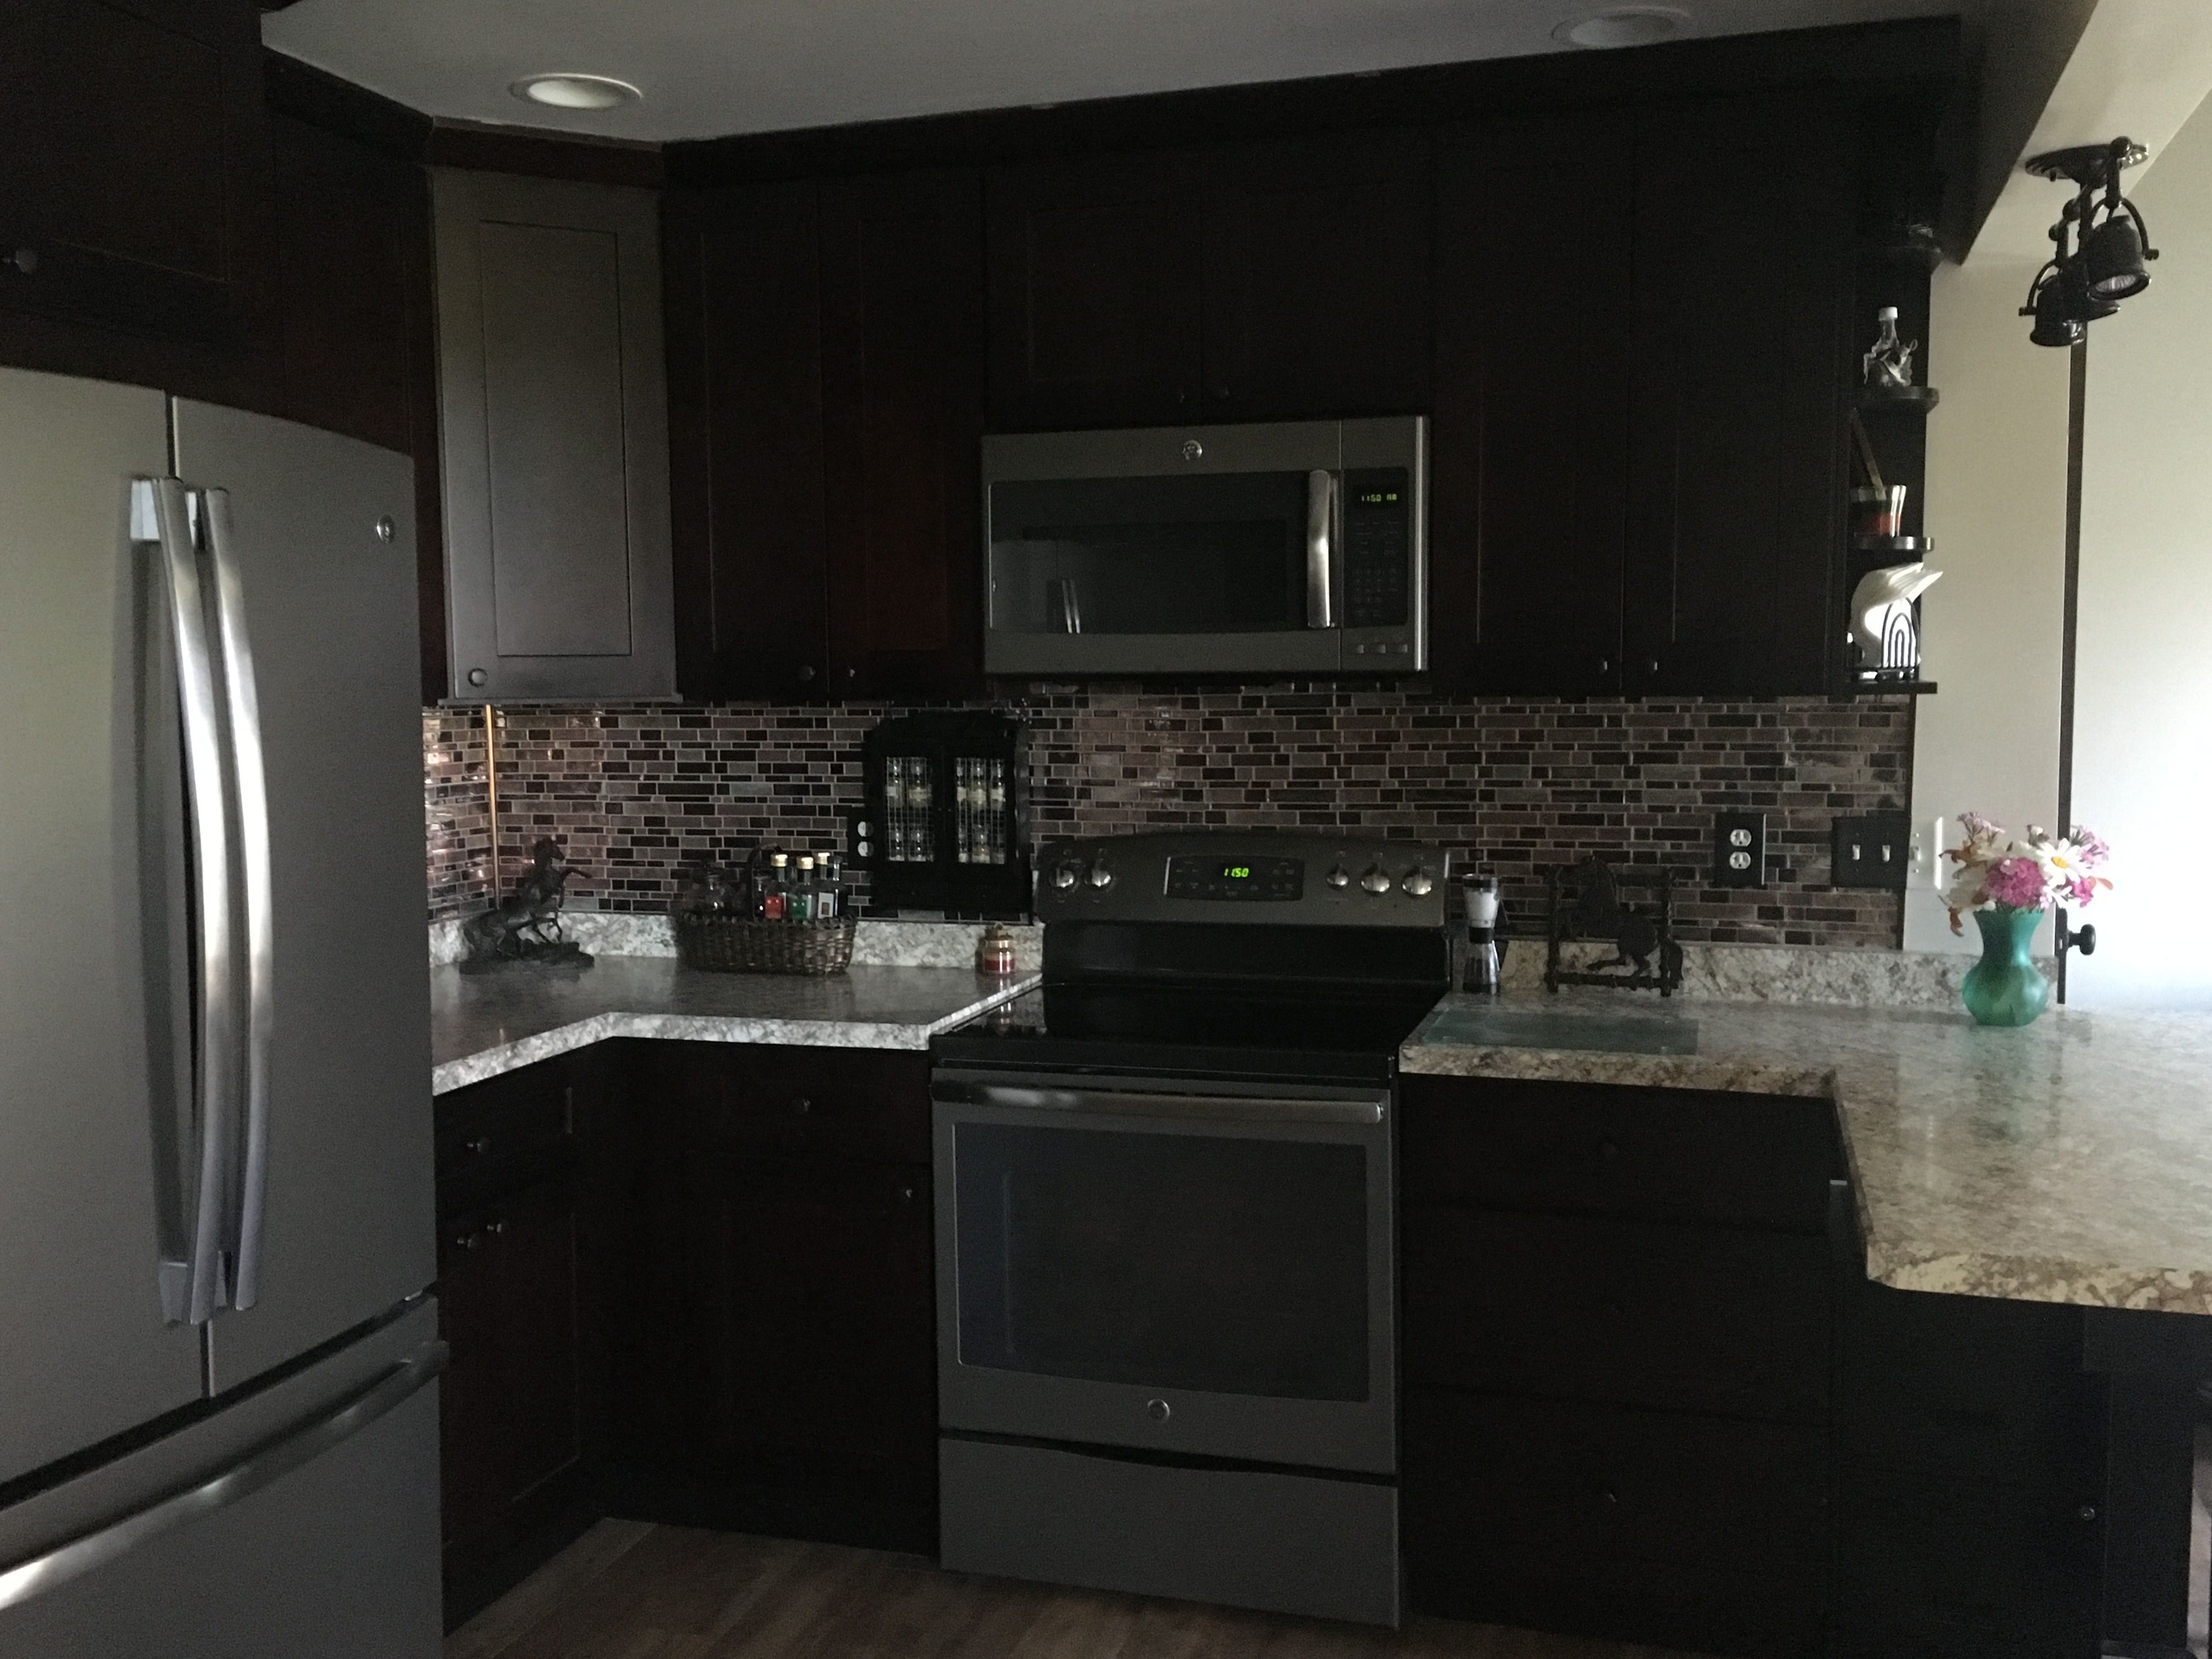 Hello Guys Shaker Espresso Kitchen Refacing By Lily Ann Cabinets Customer Review Shaker Style Kitchen Cabinets Kitchen Cabinet Styles Kitchen Cabinets